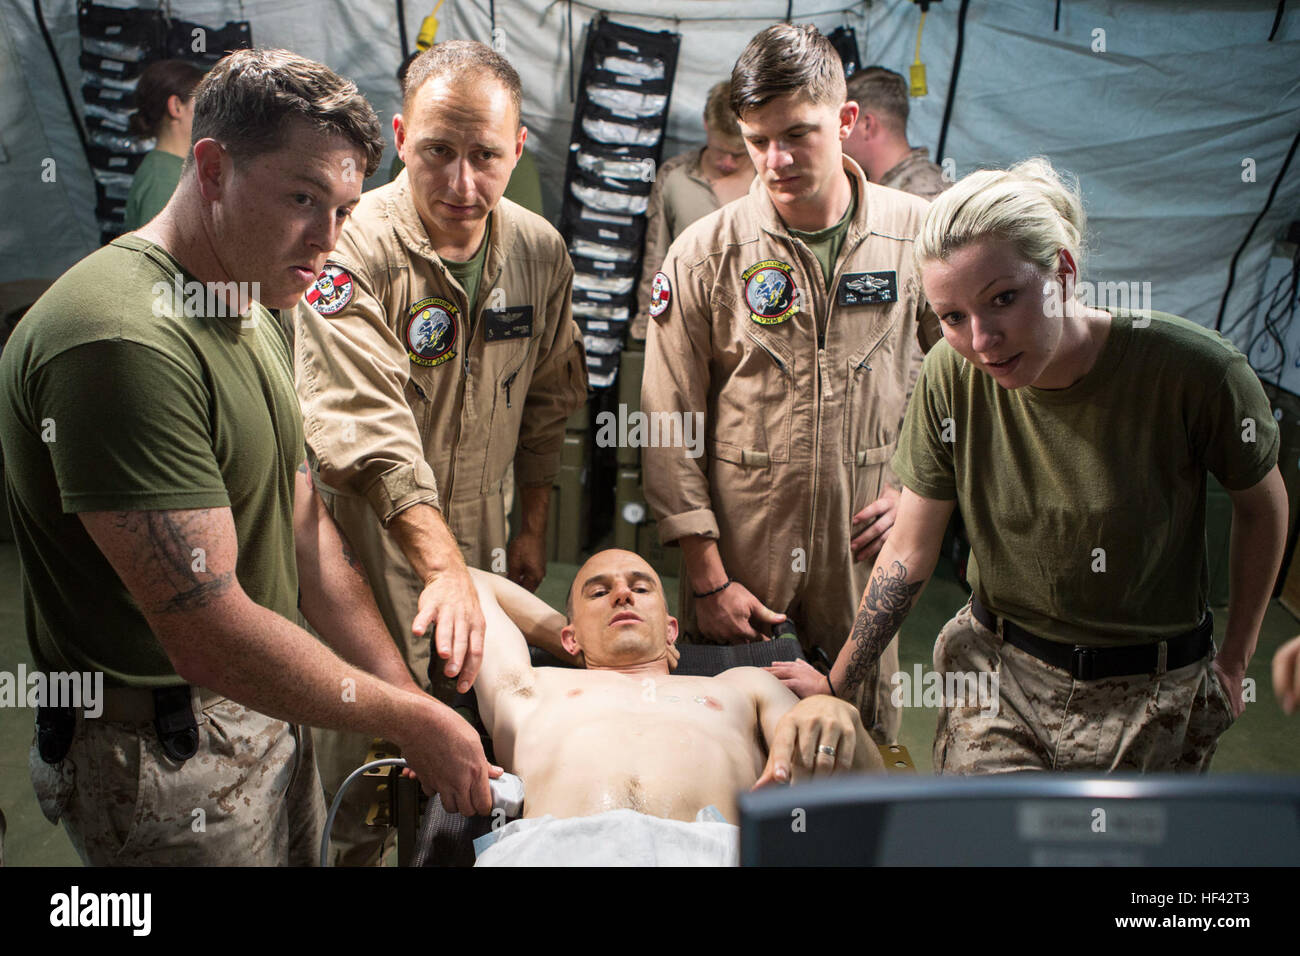 U.S. Navy Lt. Cmdr. Robert Oldt, an emergency physician and Lt. Oscar Kizhner, a flight surgeon, both with Special Stock Photo